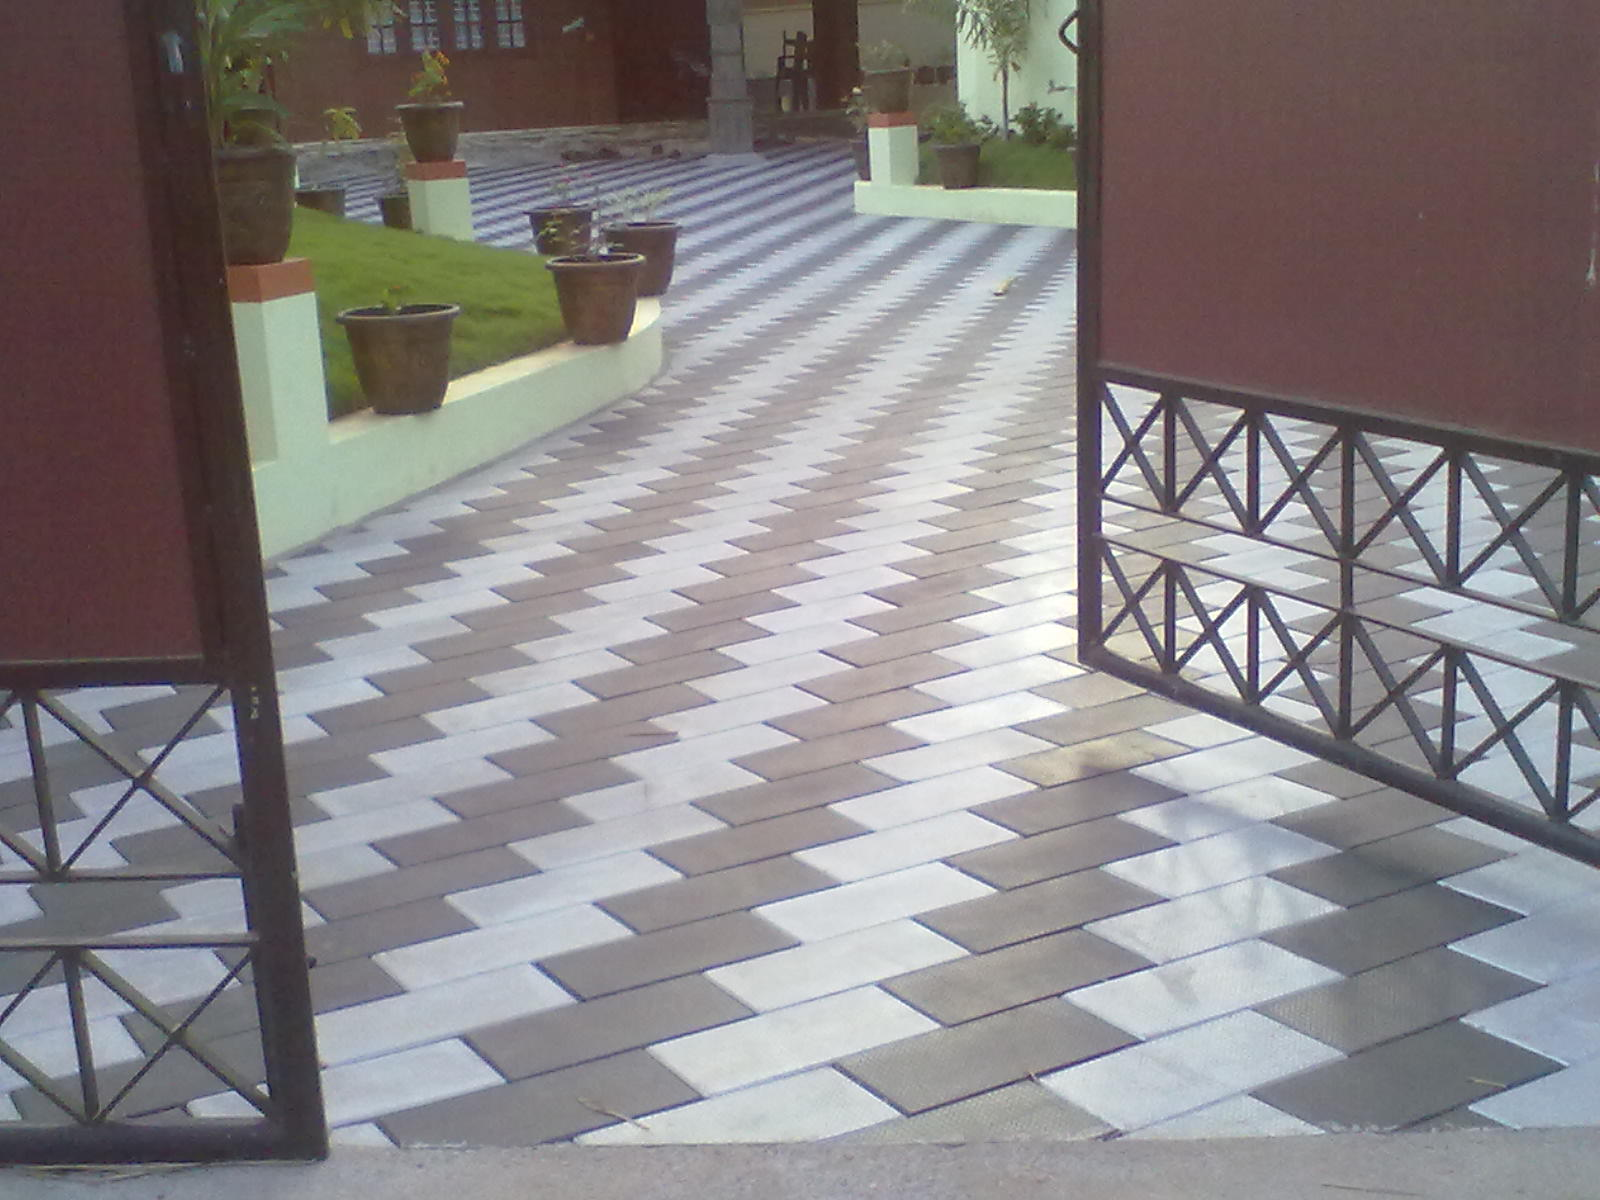 Outdoor Tiles For Walls India - Home Design - Mannahatta.us